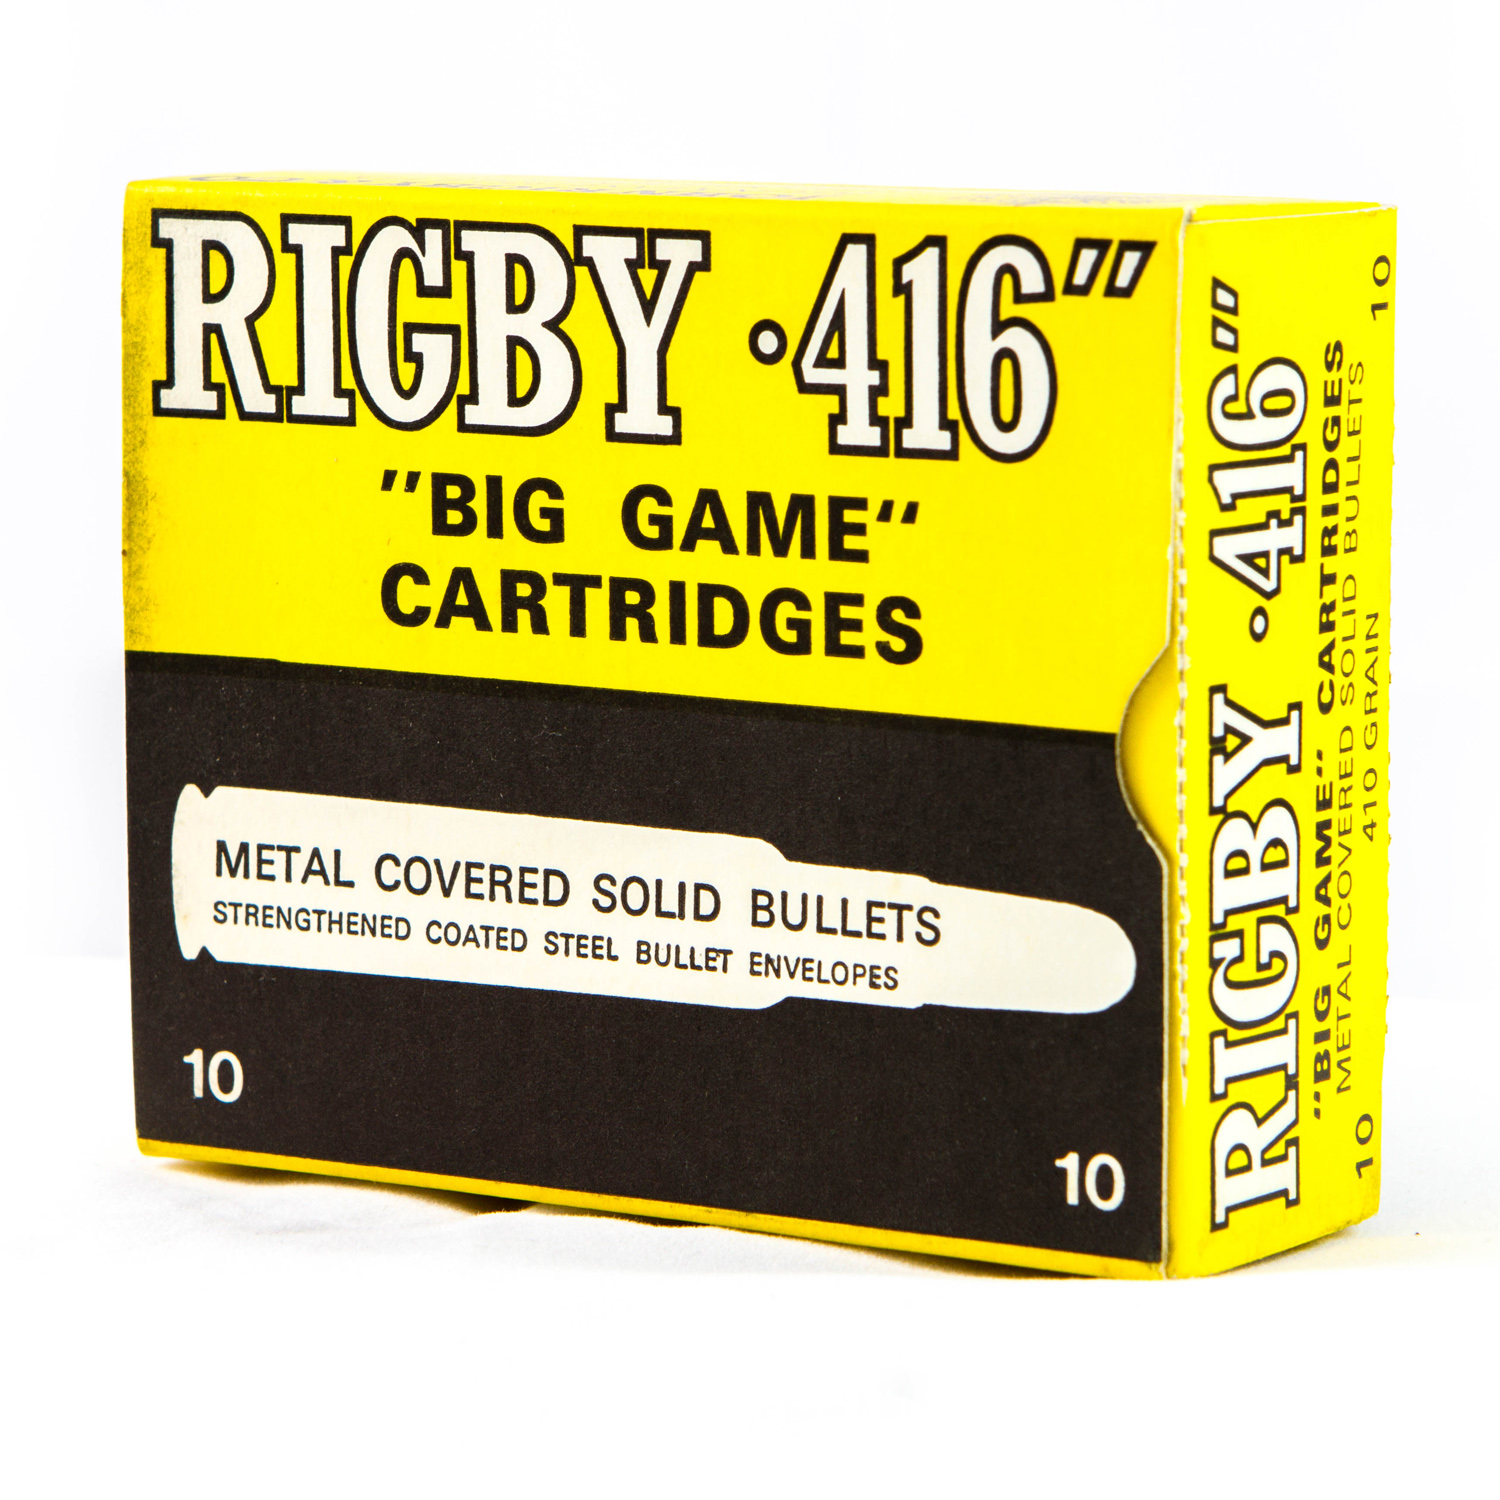 Vintage Rigby Ammunition Boxes